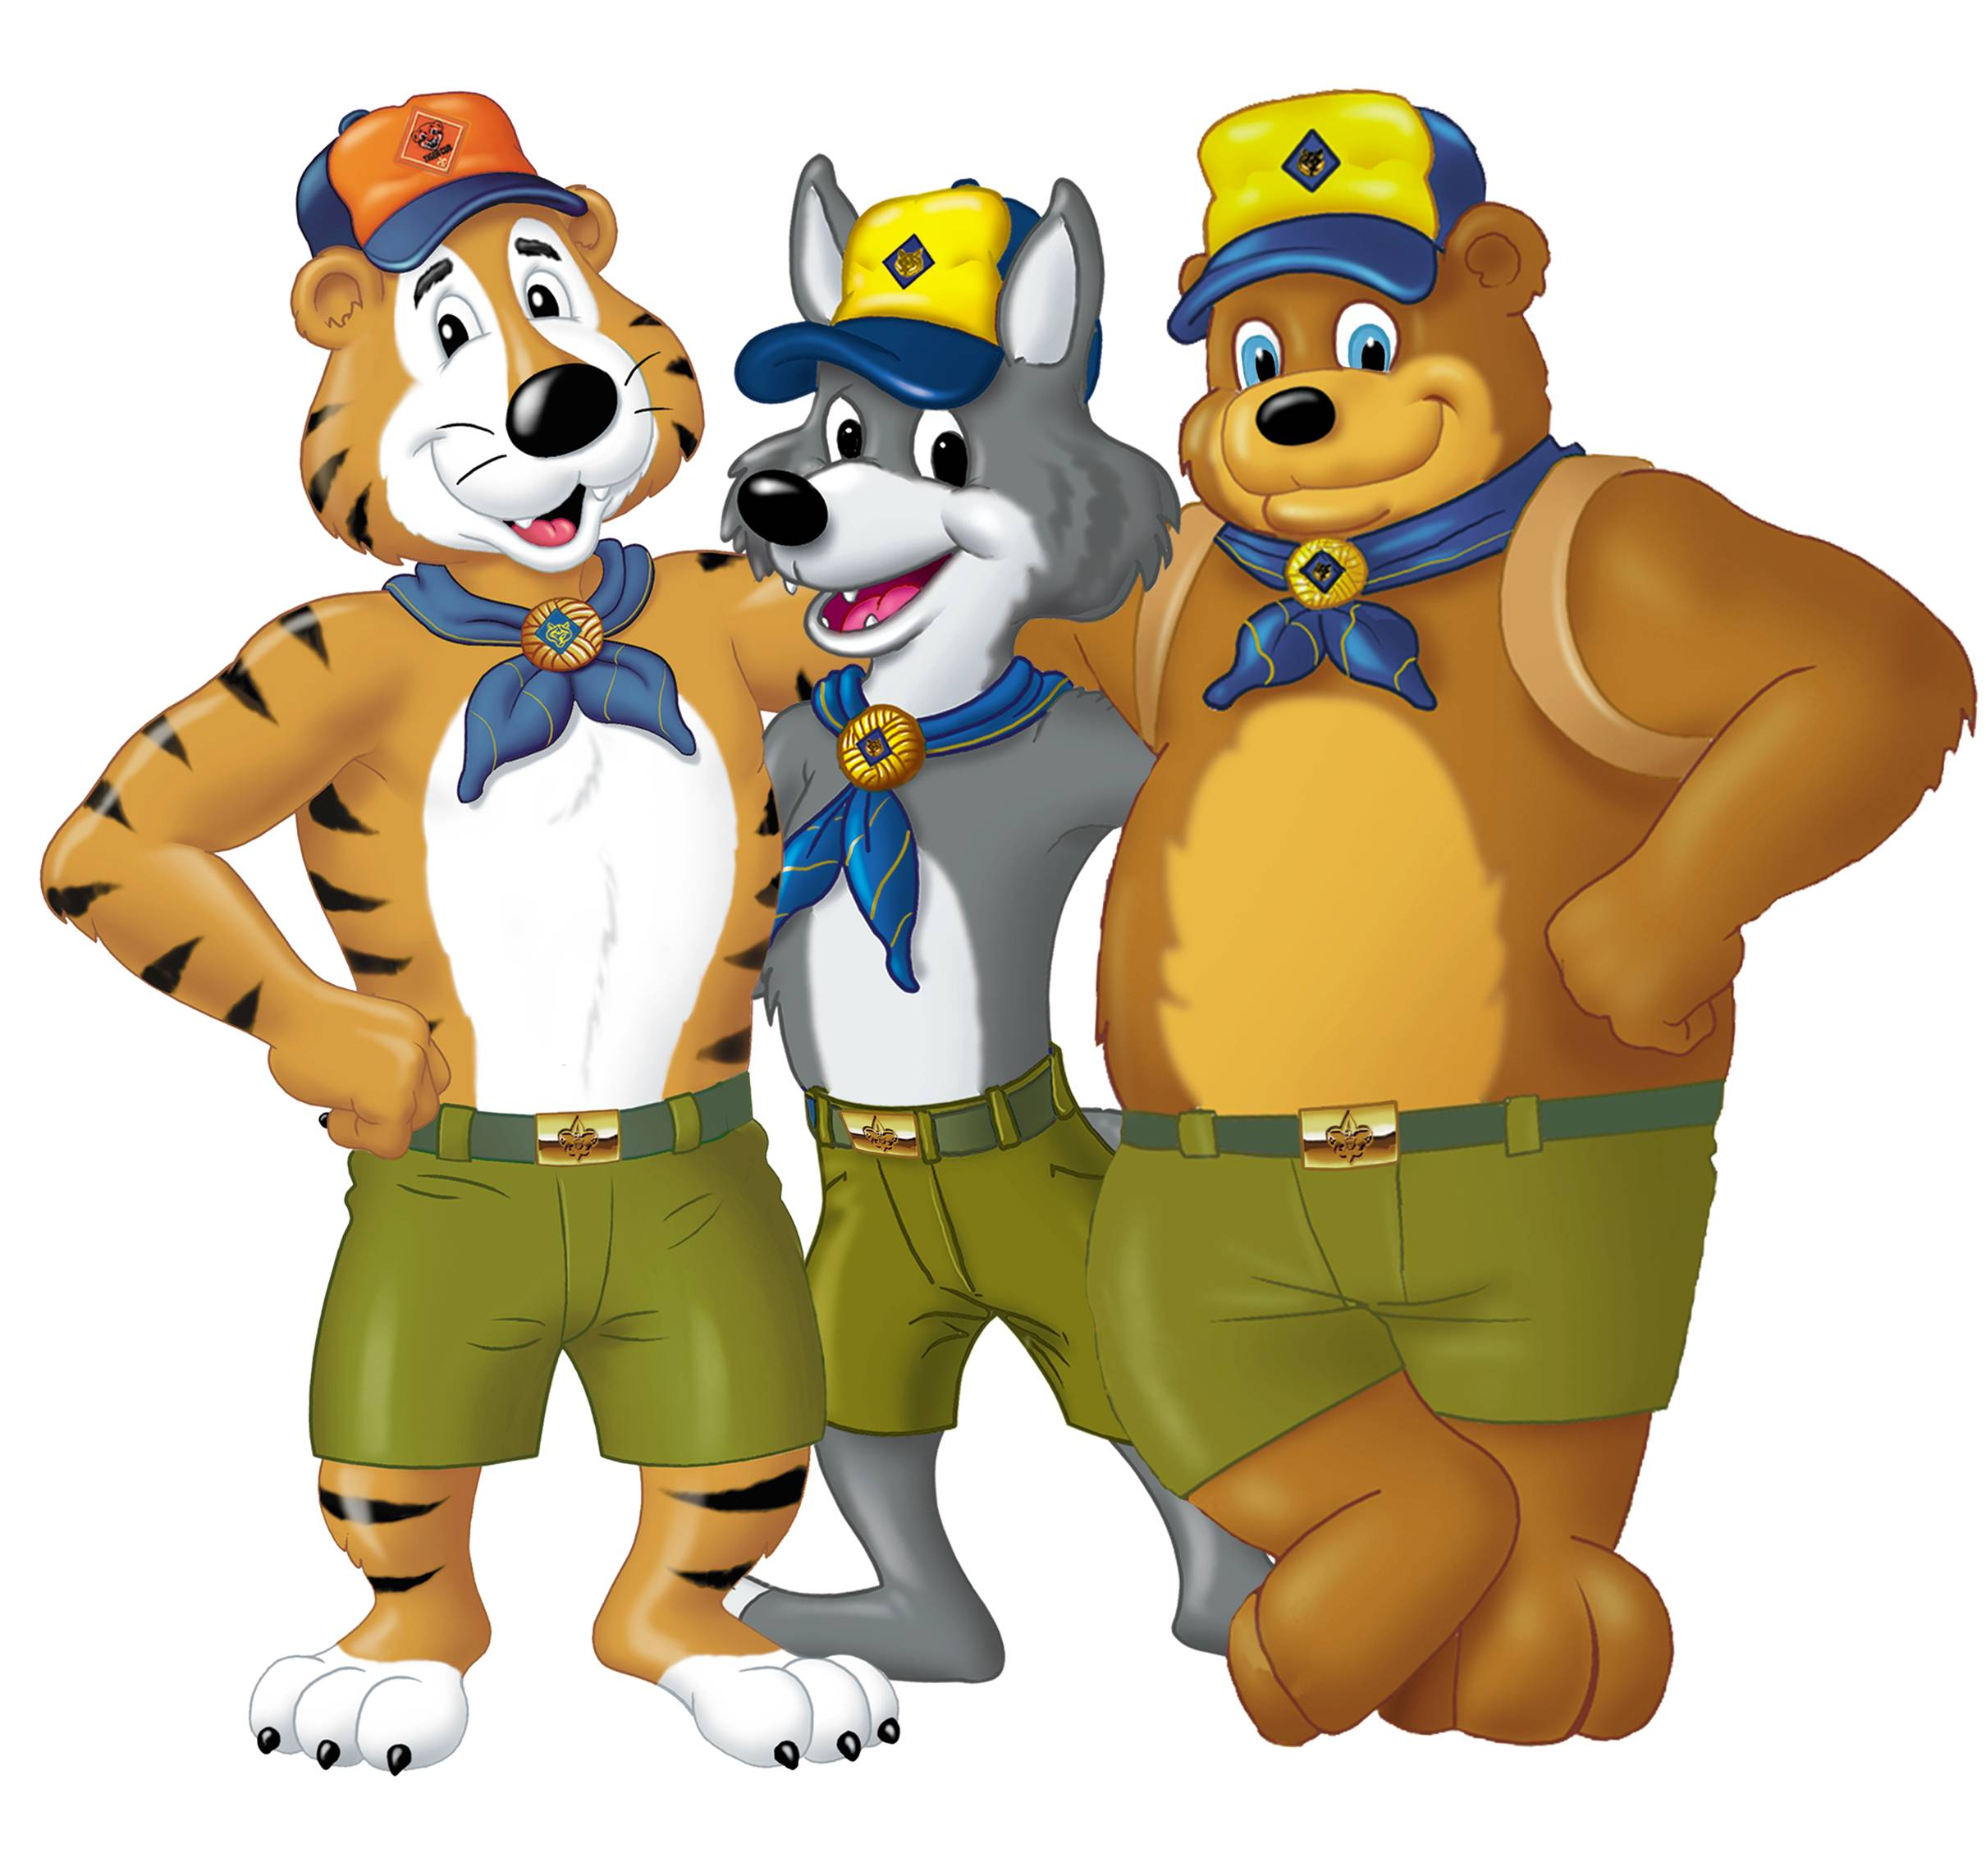 http://www.scoutingbsa.org/_Images/Cub_Scout/Cartoon_Characters/Cub_Scout_Characters.jpg